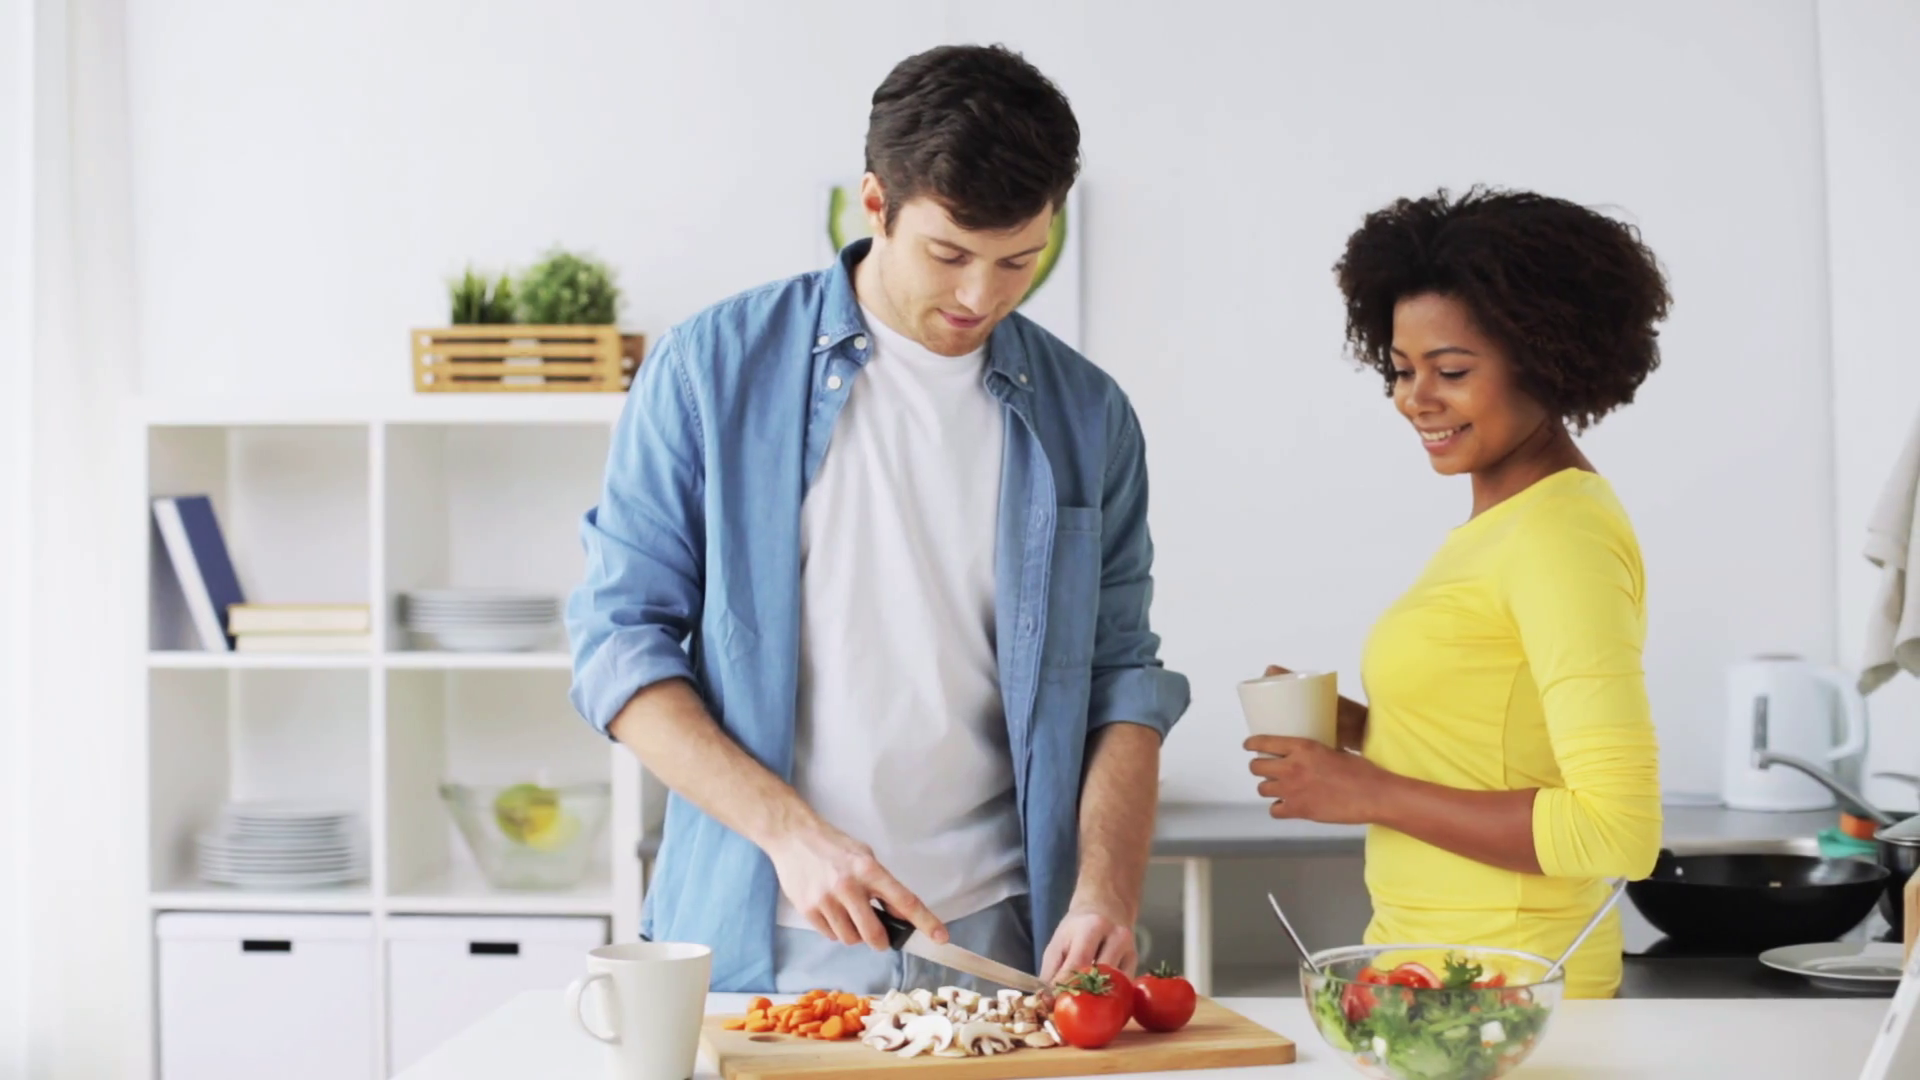 5 TIPS TO HAVE IN MIND WHILE BUYING ESSENTIAL KITCHEN ACCESSORIES